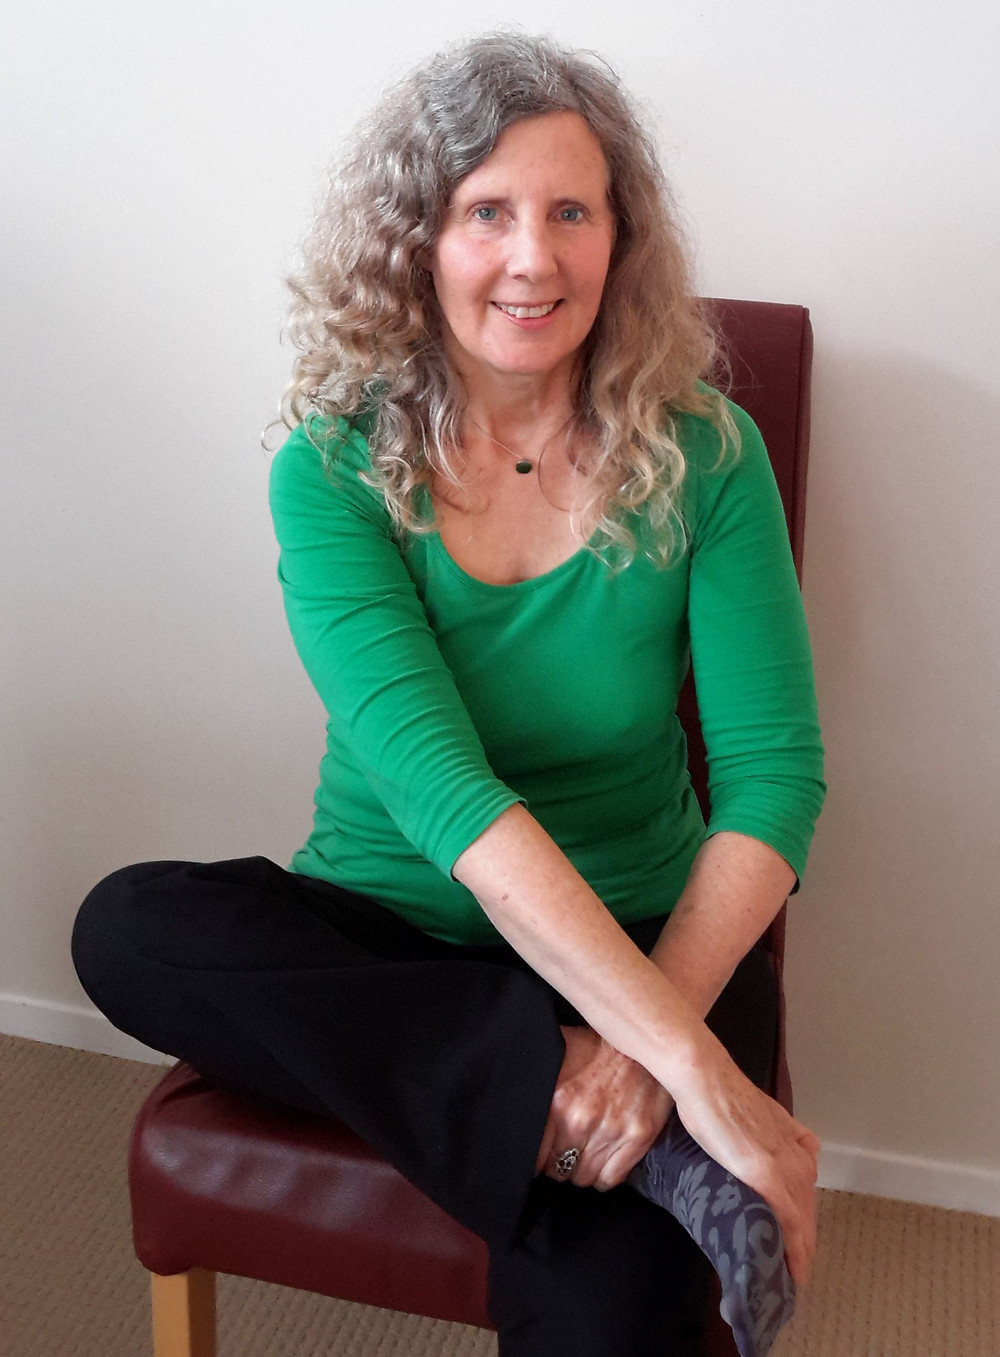 Glenys doing energy medicine technique for mental clarity